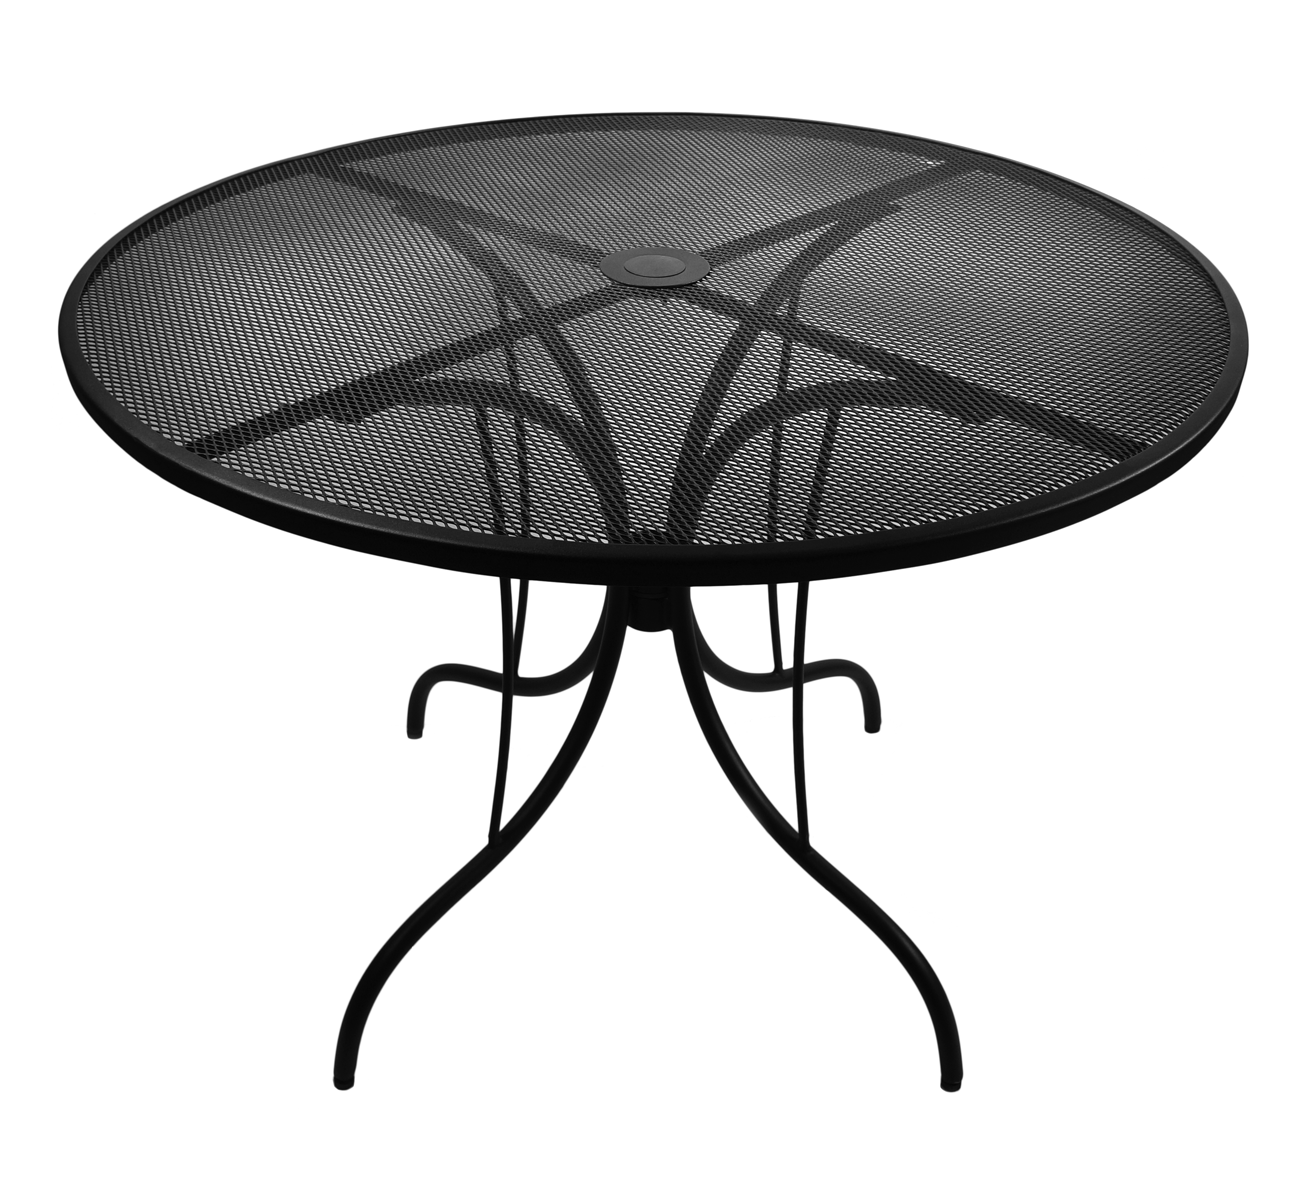 Commercial metal outdoor furniture - 42 Round Galvanized Steel Mesh Commercial Outdoor Table Top